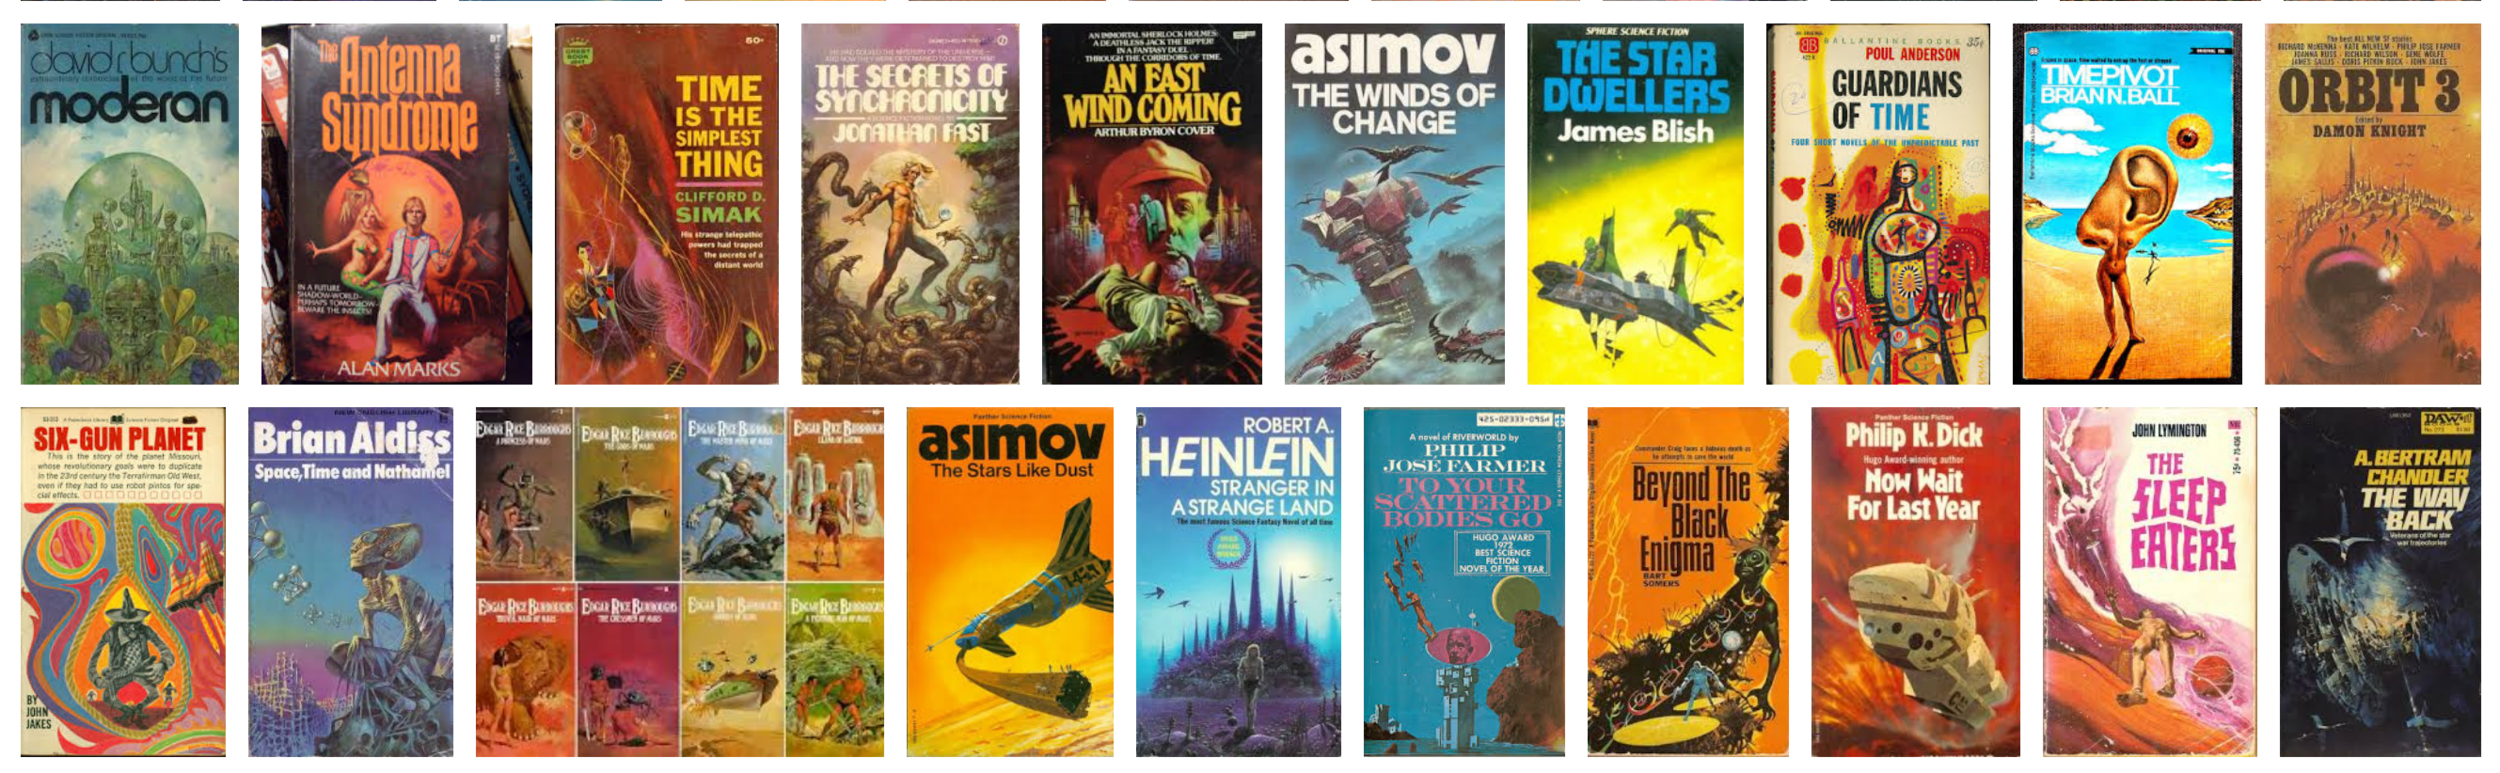 1970s Sci fi book covers all look the same